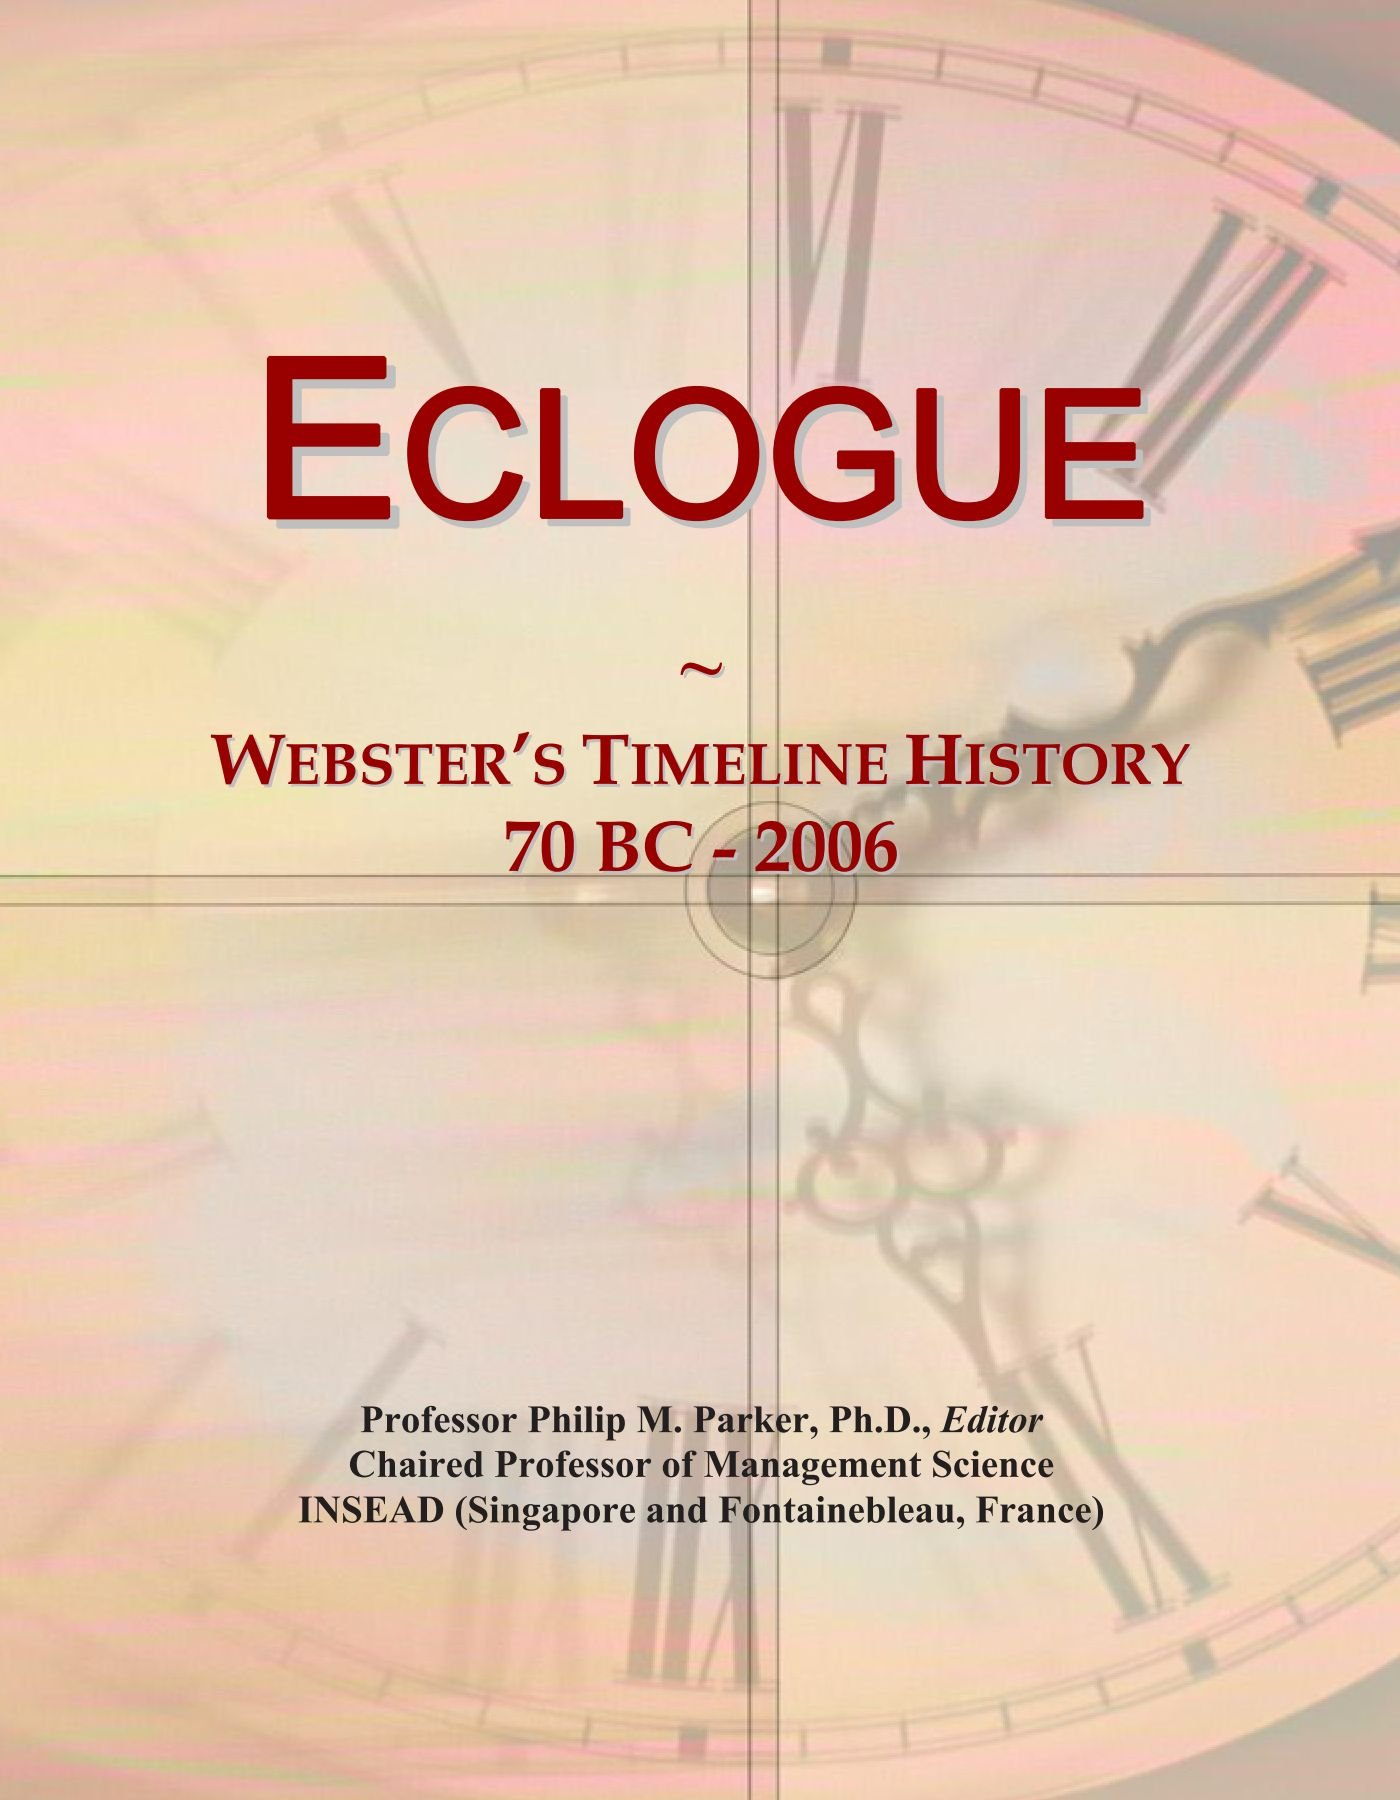 Eclogue: Webster's Timeline History, 70 BC - 2006 PDF